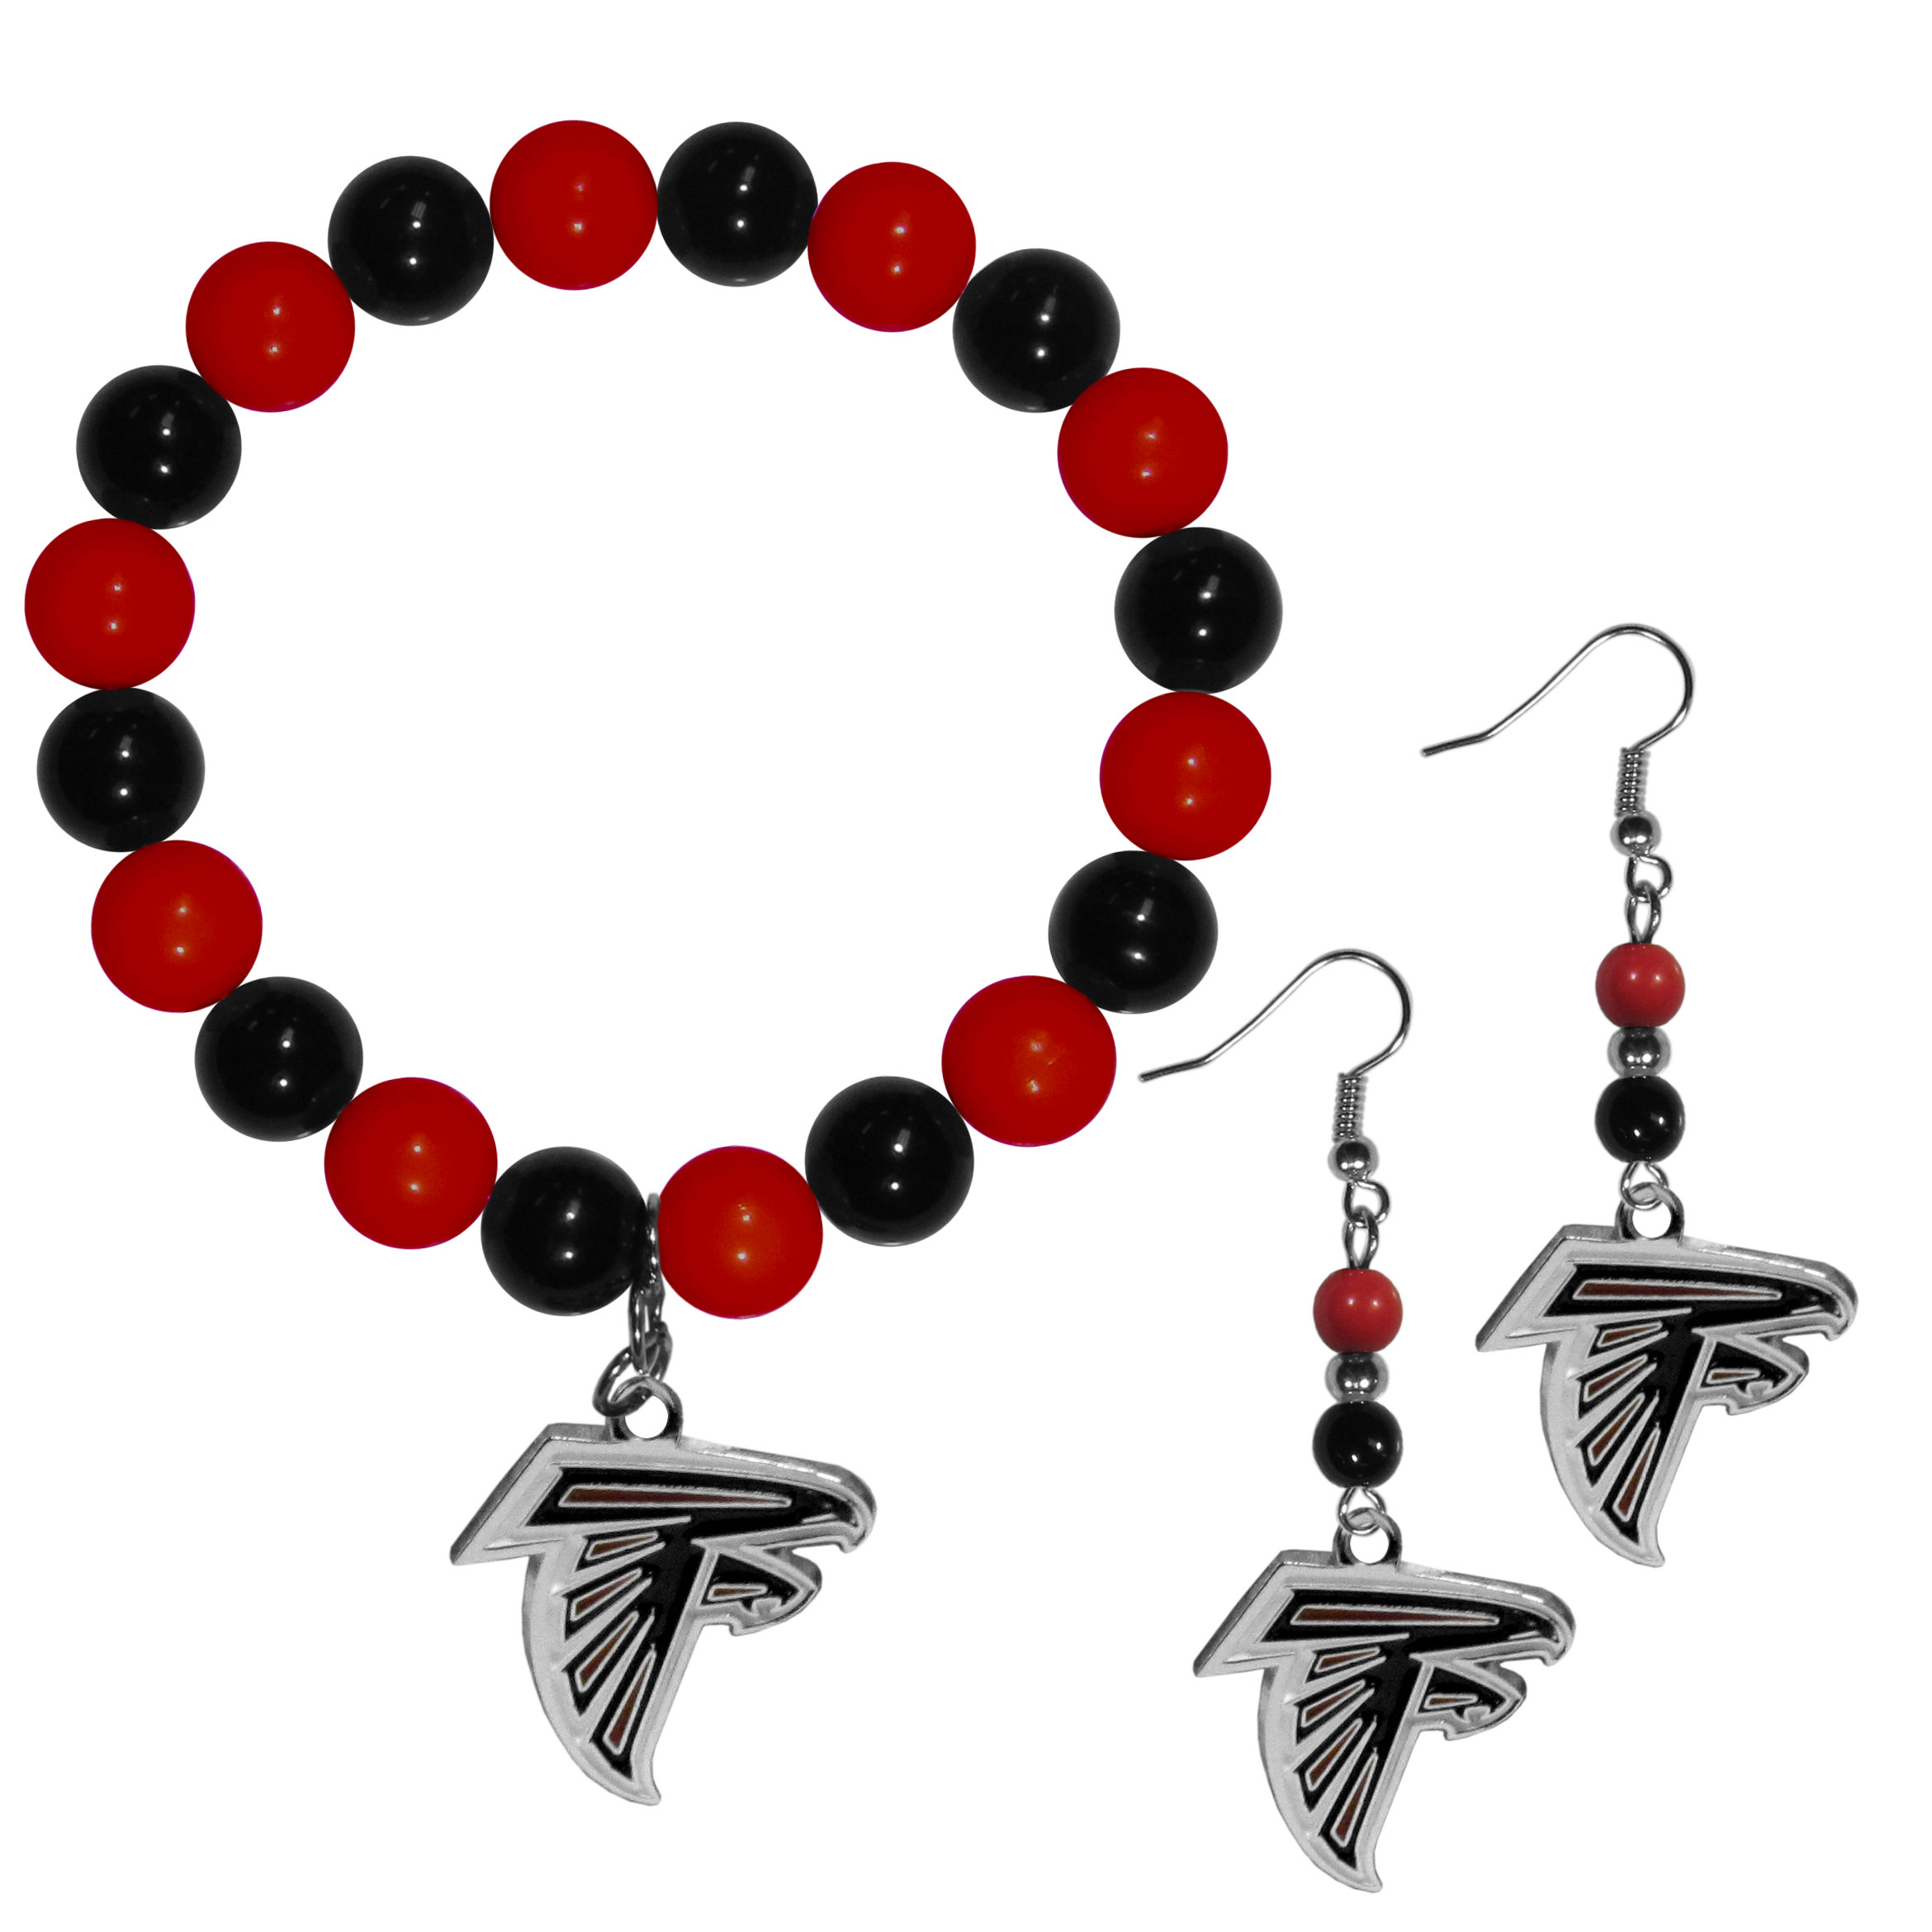 Atlanta Falcons Fan Bead Earrings and Bracelet Set - This fun and colorful Atlanta Falcons fan bead jewelry set is fun and casual with eye-catching beads in bright team colors. The fashionable dangle earrings feature a team colored beads that drop down to a carved and enameled charm. The stretch bracelet has larger matching beads that make a striking statement and have a matching team charm. These sassy yet sporty jewelry pieces make a perfect gift for any female fan. Spice up your game-day outfit with these fun colorful earrings and bracelet that are also cute enough for any day.